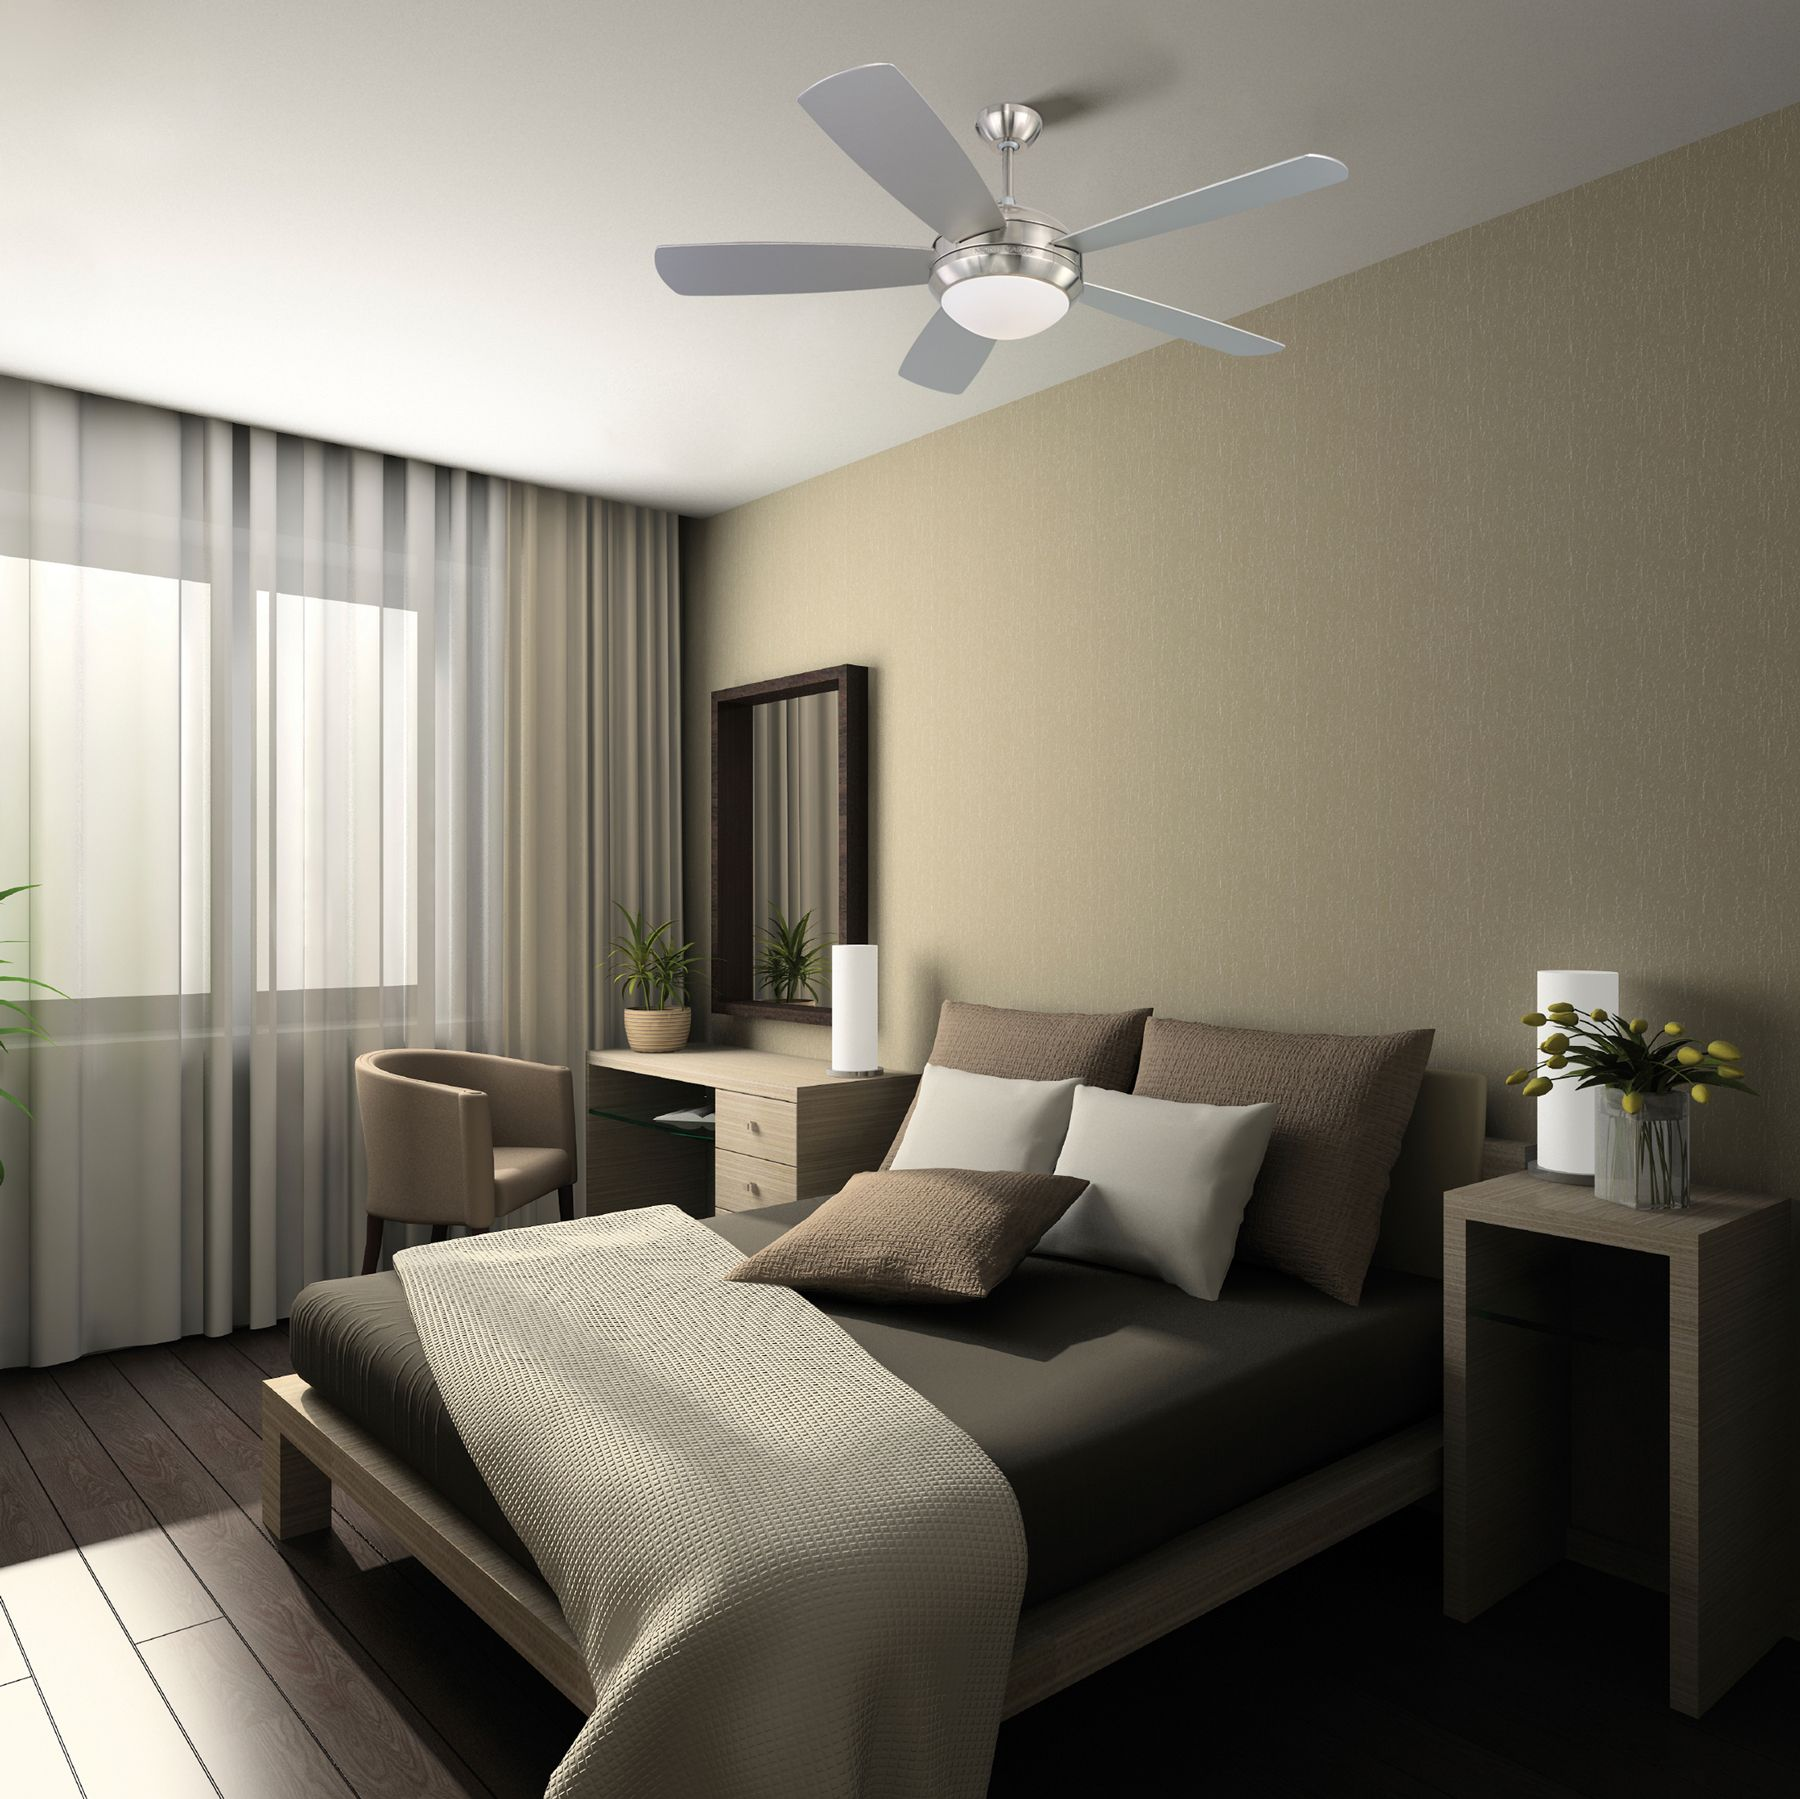 Discus ceiling fan monte carlo at lightology suites - Decoracion de dormitorio principal ...